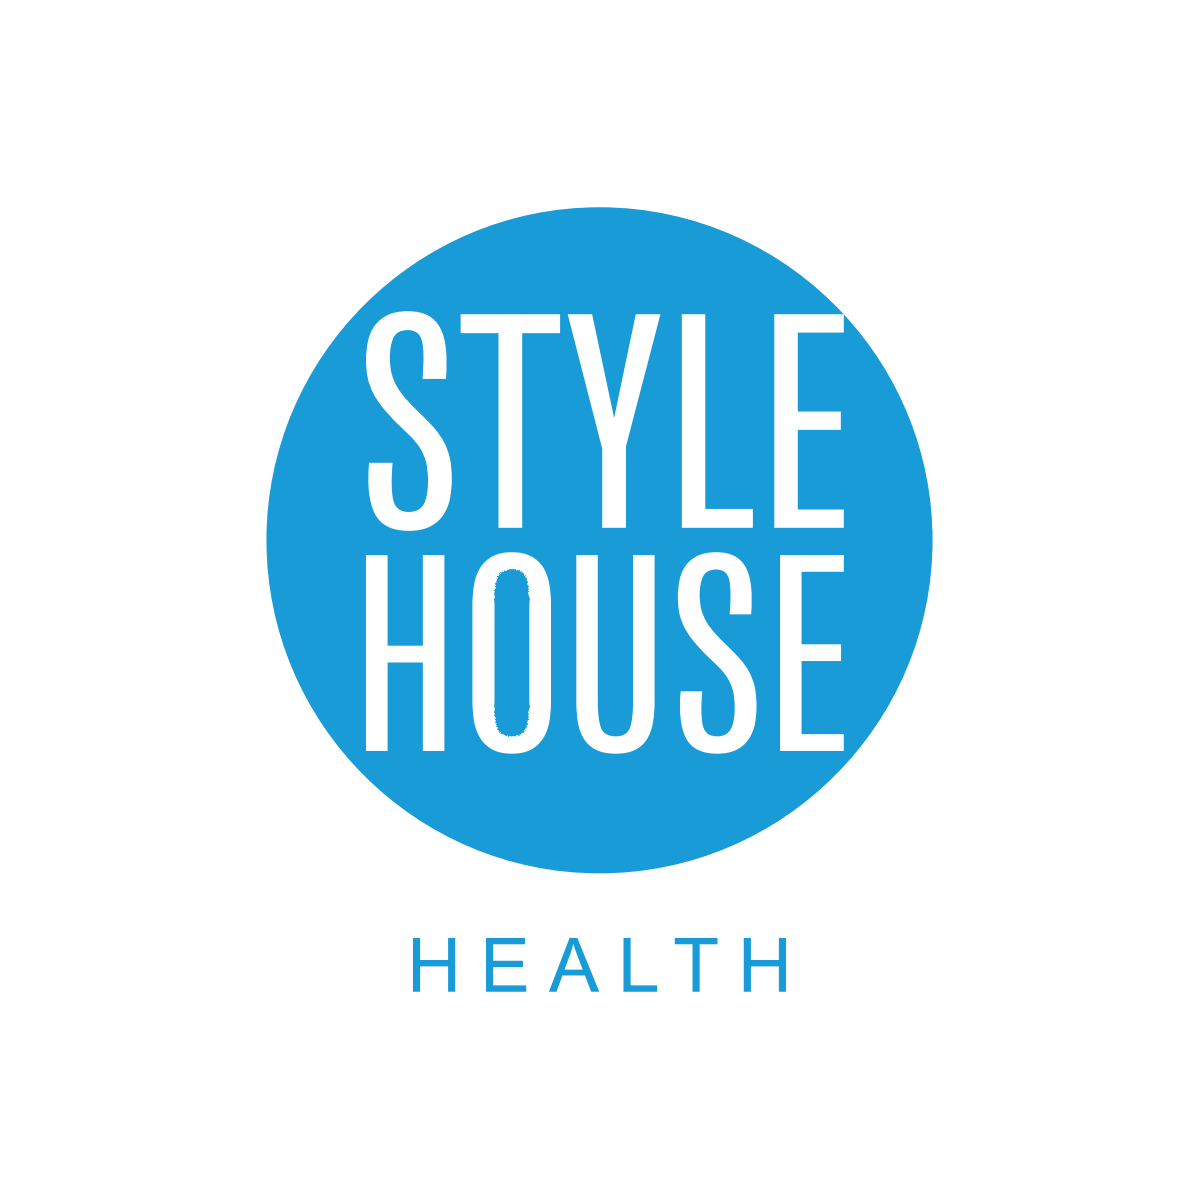 Style House Health and Style House Cosmetics in Cyan (Turquoise)